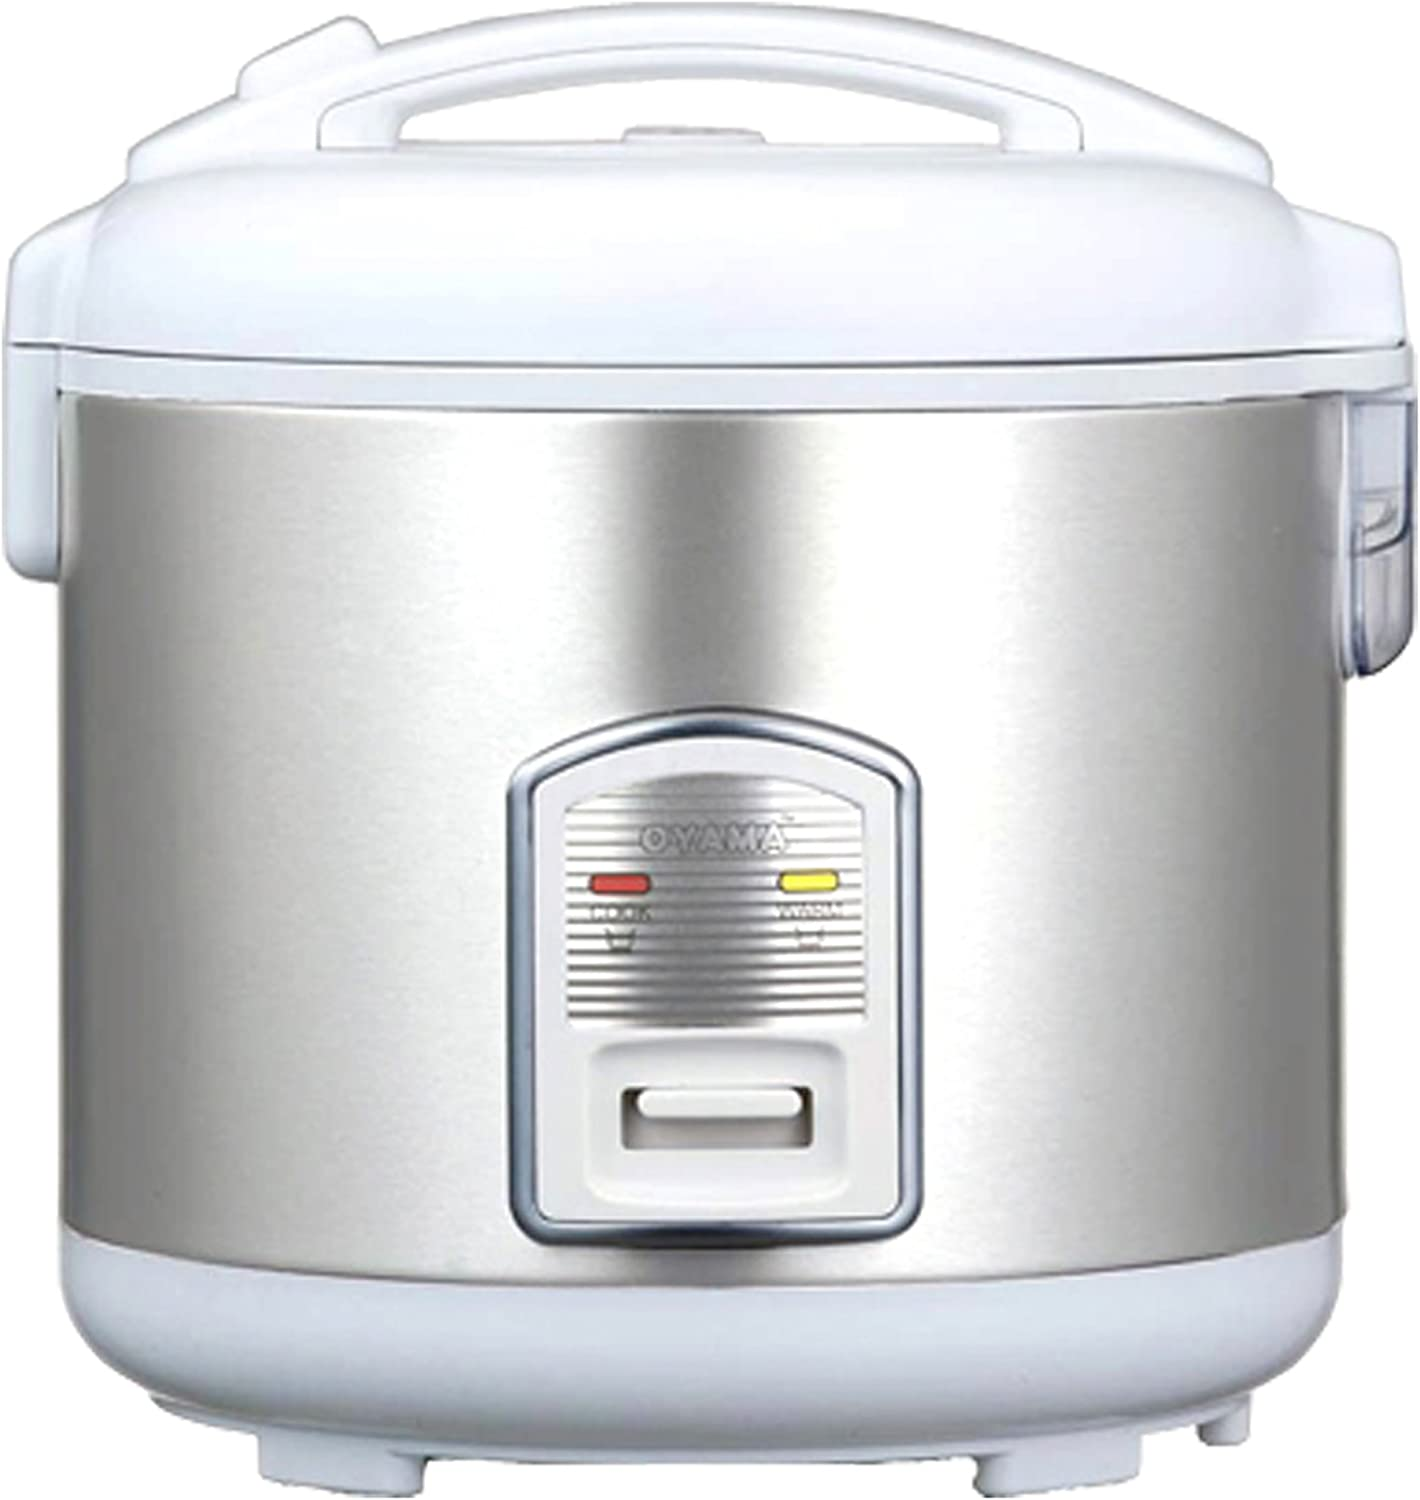 Oyama CFS-F18W 10 Cup Rice Cooker, Stainless White